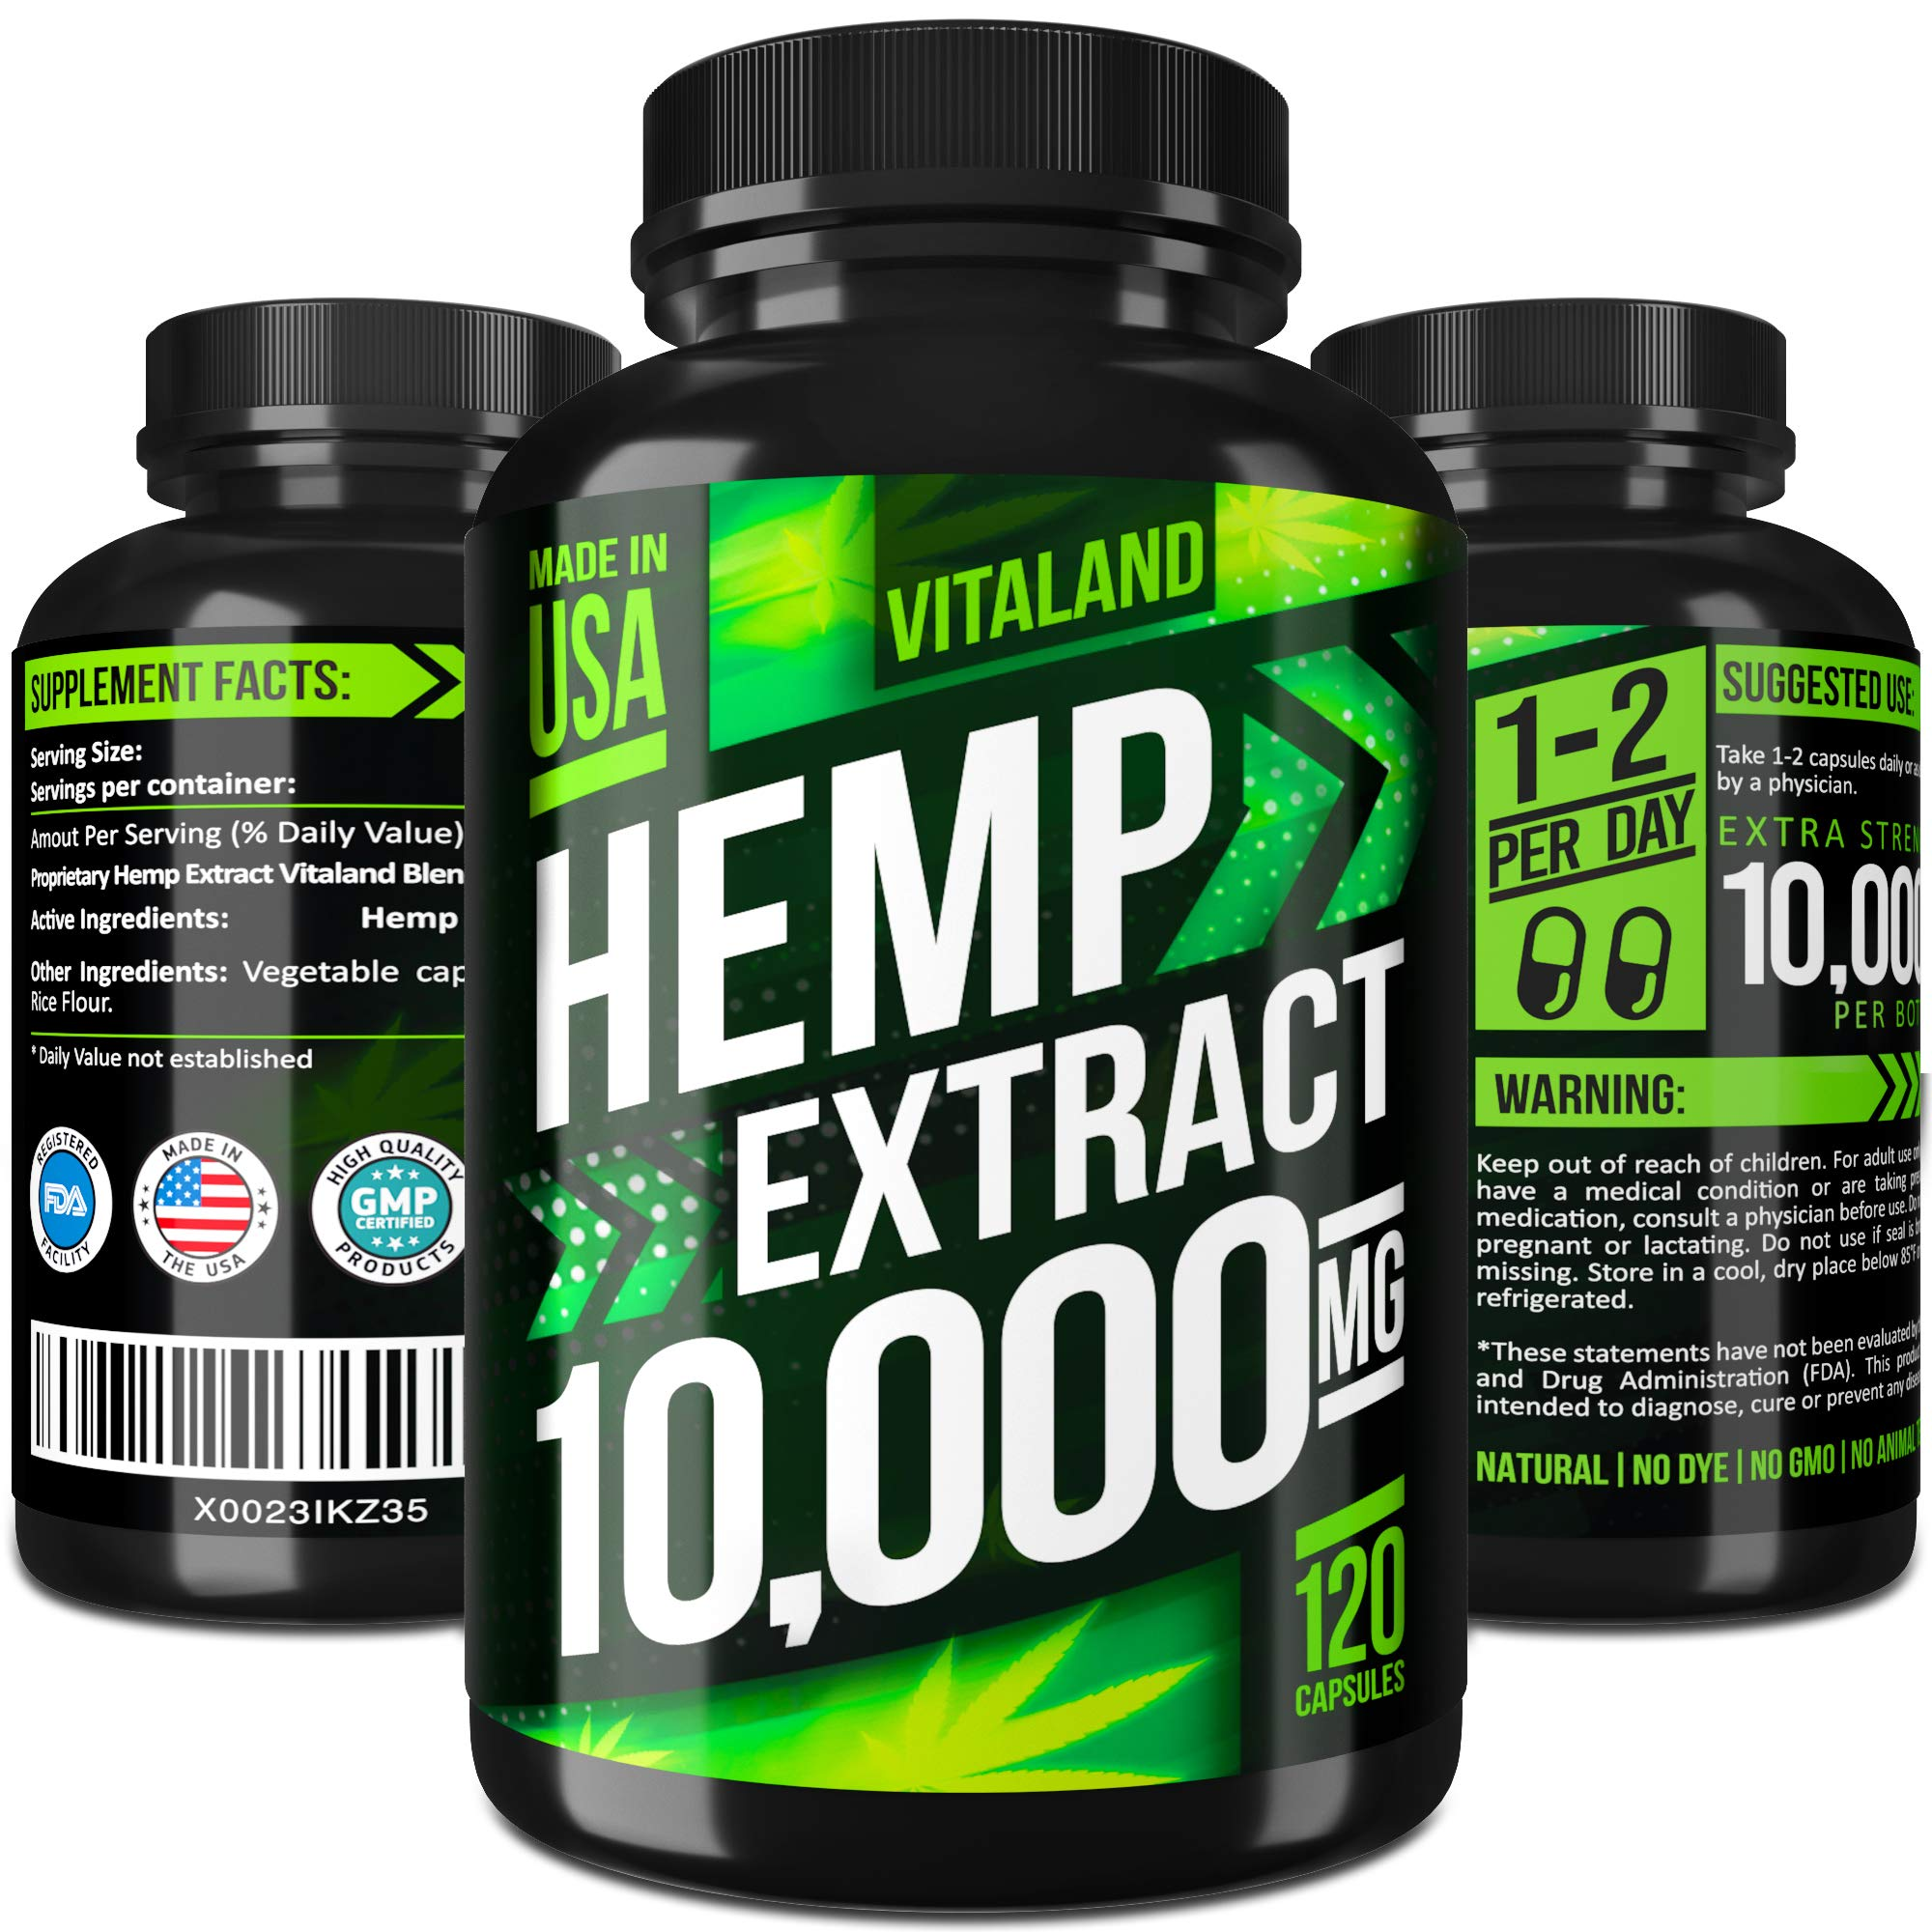 Hemp Oil Capsules 10000MG - 83.3 MG per Capsule - Made in USA - Efficient Pain, Stress & Anxiety Relief - 100% Premium Hemp Oil - Anti Inflammatory - Sleep & Mood Support - Ideal Omega 3, 6, 9 Source by VitaLand